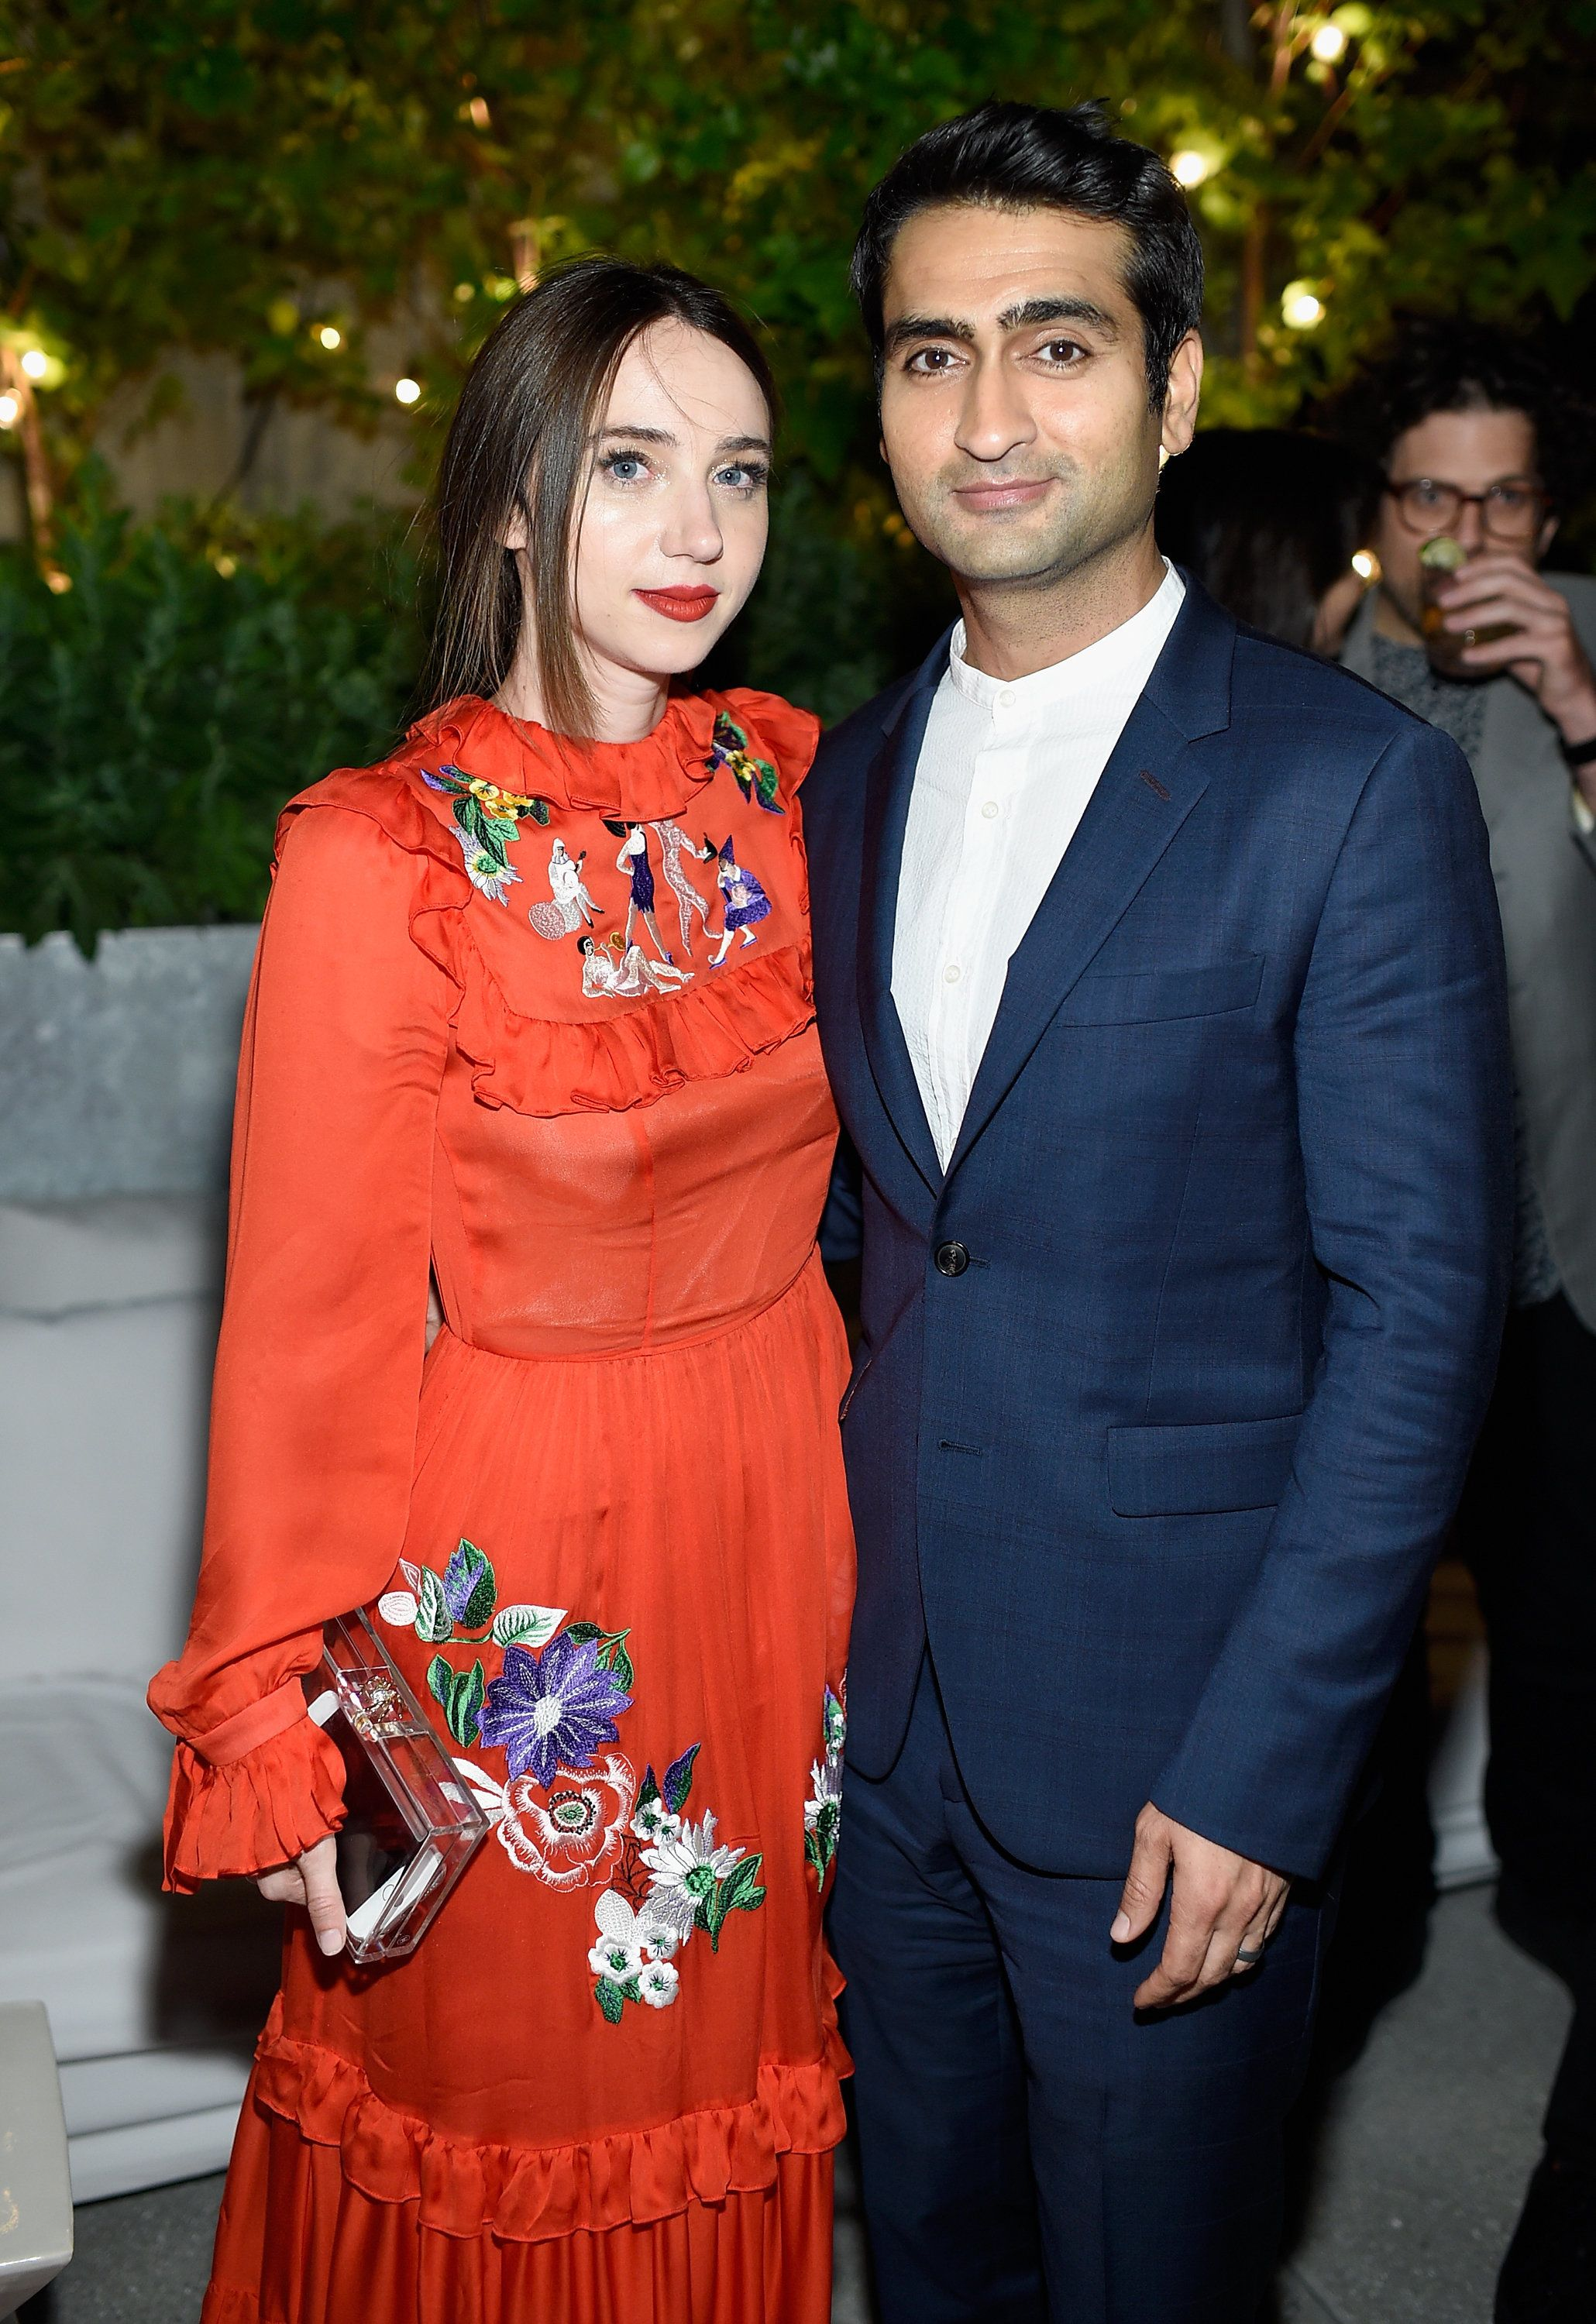 NEW YORK, NY - JUNE 20:  Zoe Kazan, and Kumail Nanjiani attend 'The Big Sick' New York Premiere after party at The Roof on June 20, 2017 in New York City.  (Photo by Dimitrios Kambouris/Getty Images)